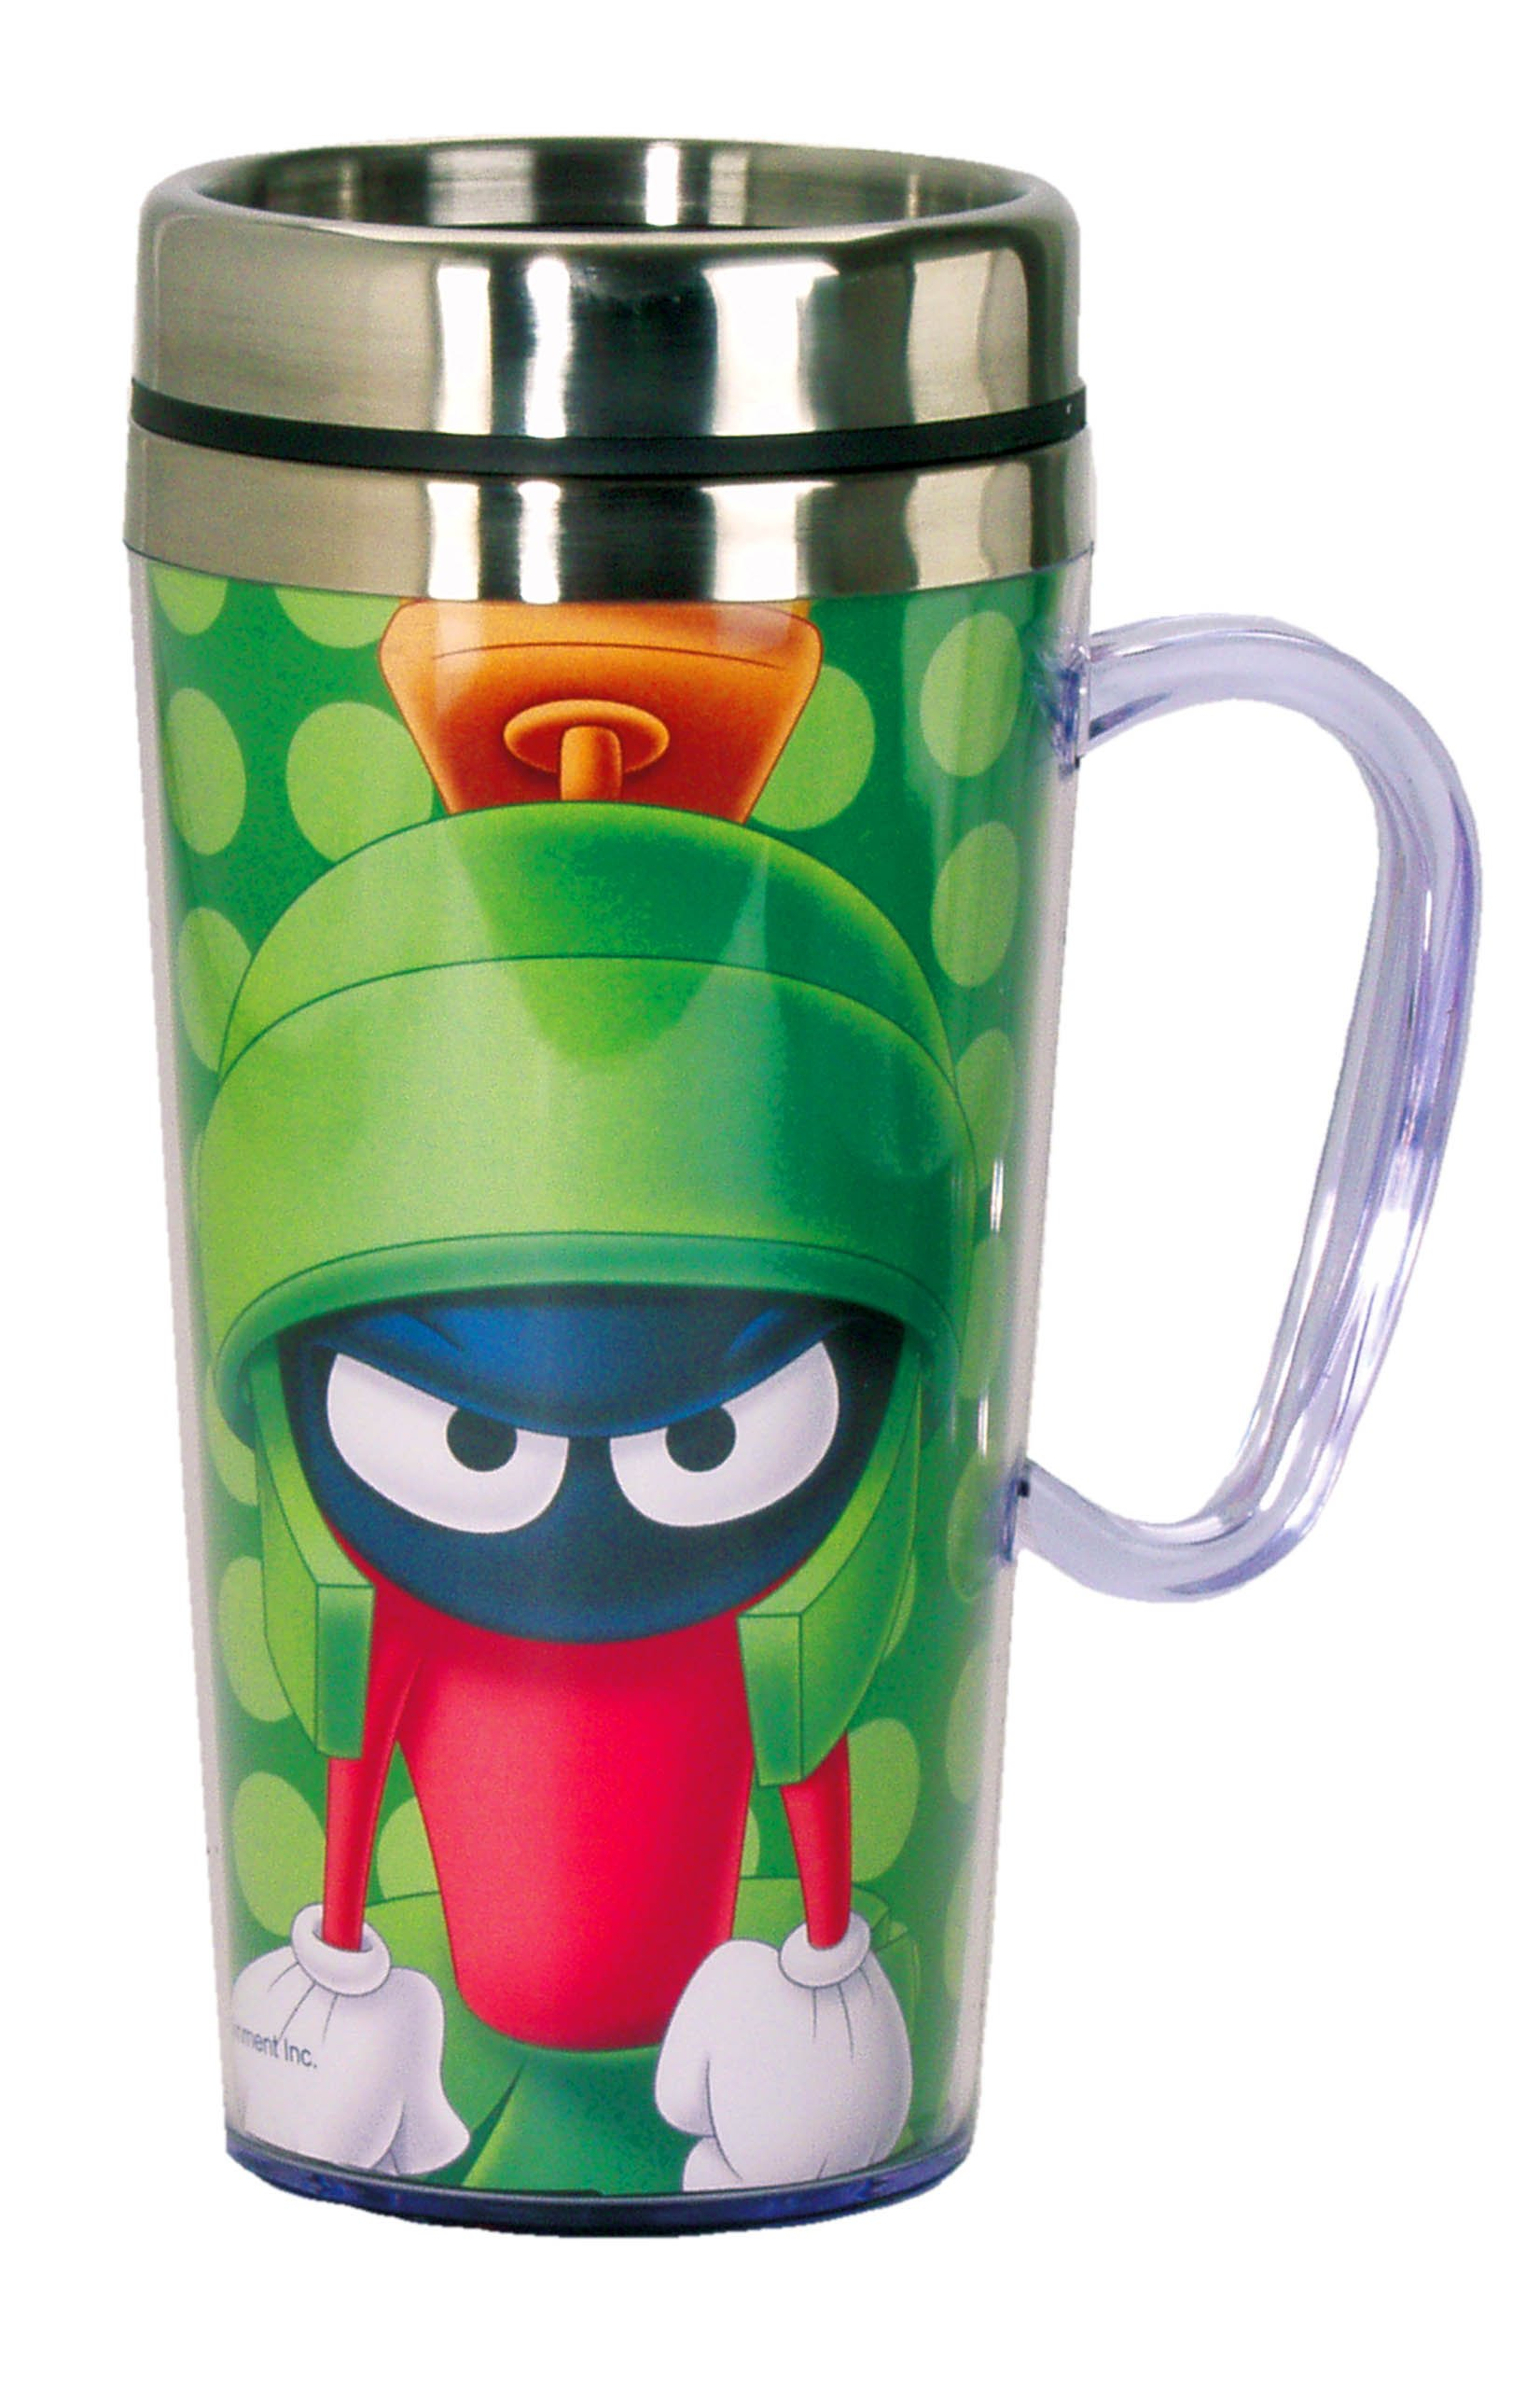 Looney Tunes 17233 Marvin The Martian Insulated